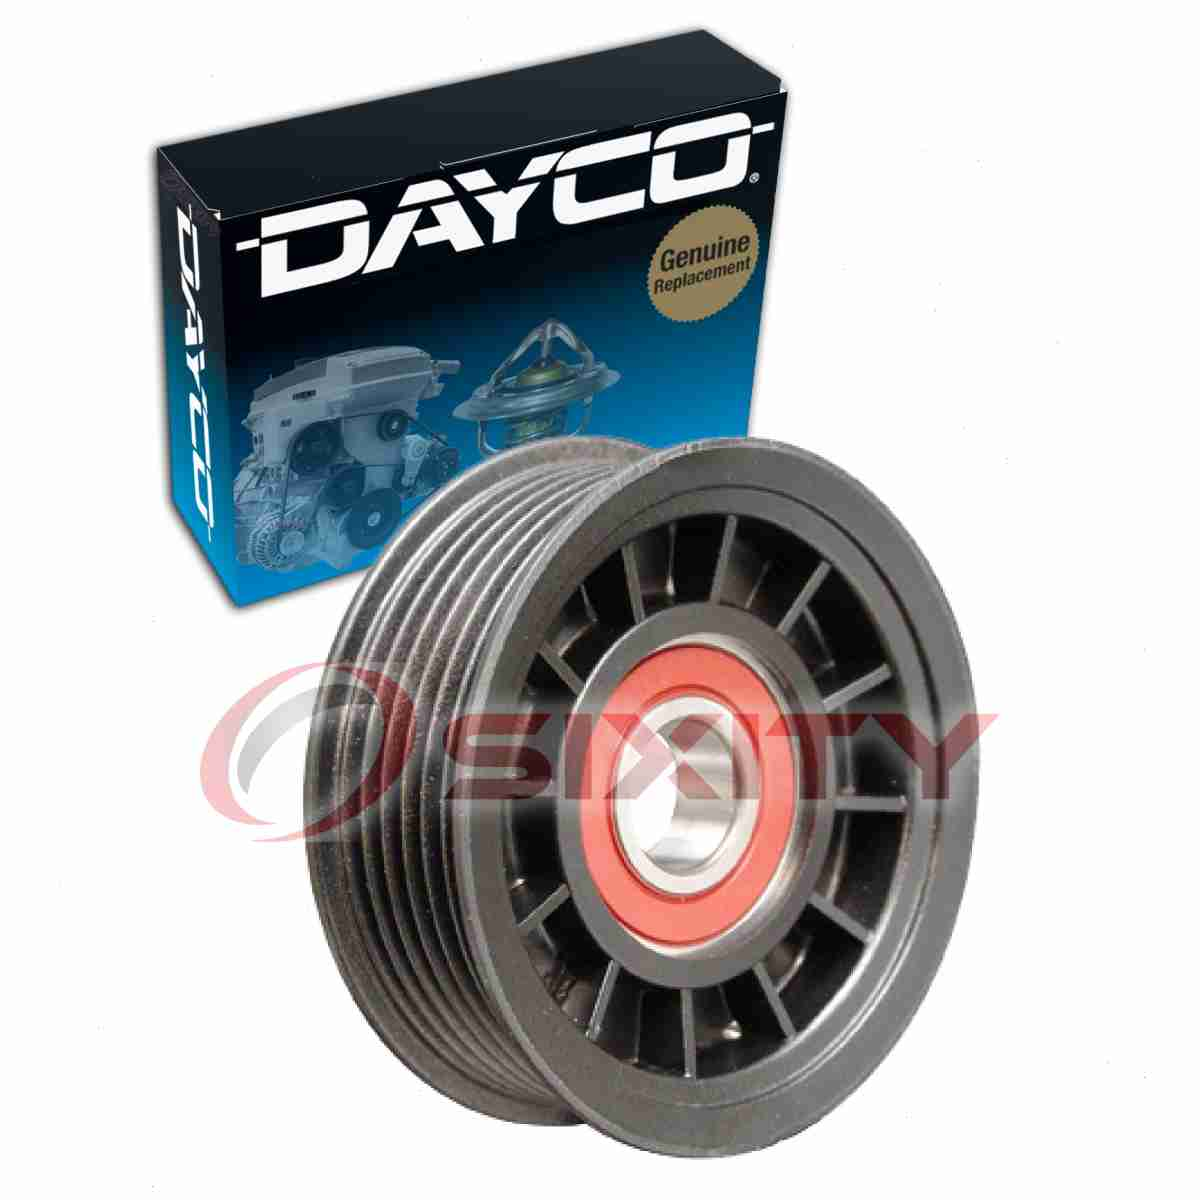 hight resolution of dayco grooved drive belt pulley for 1999 2010 jeep grand cherokee this jeep grand cherokee belt diagram is for model year 2005 with v6 3